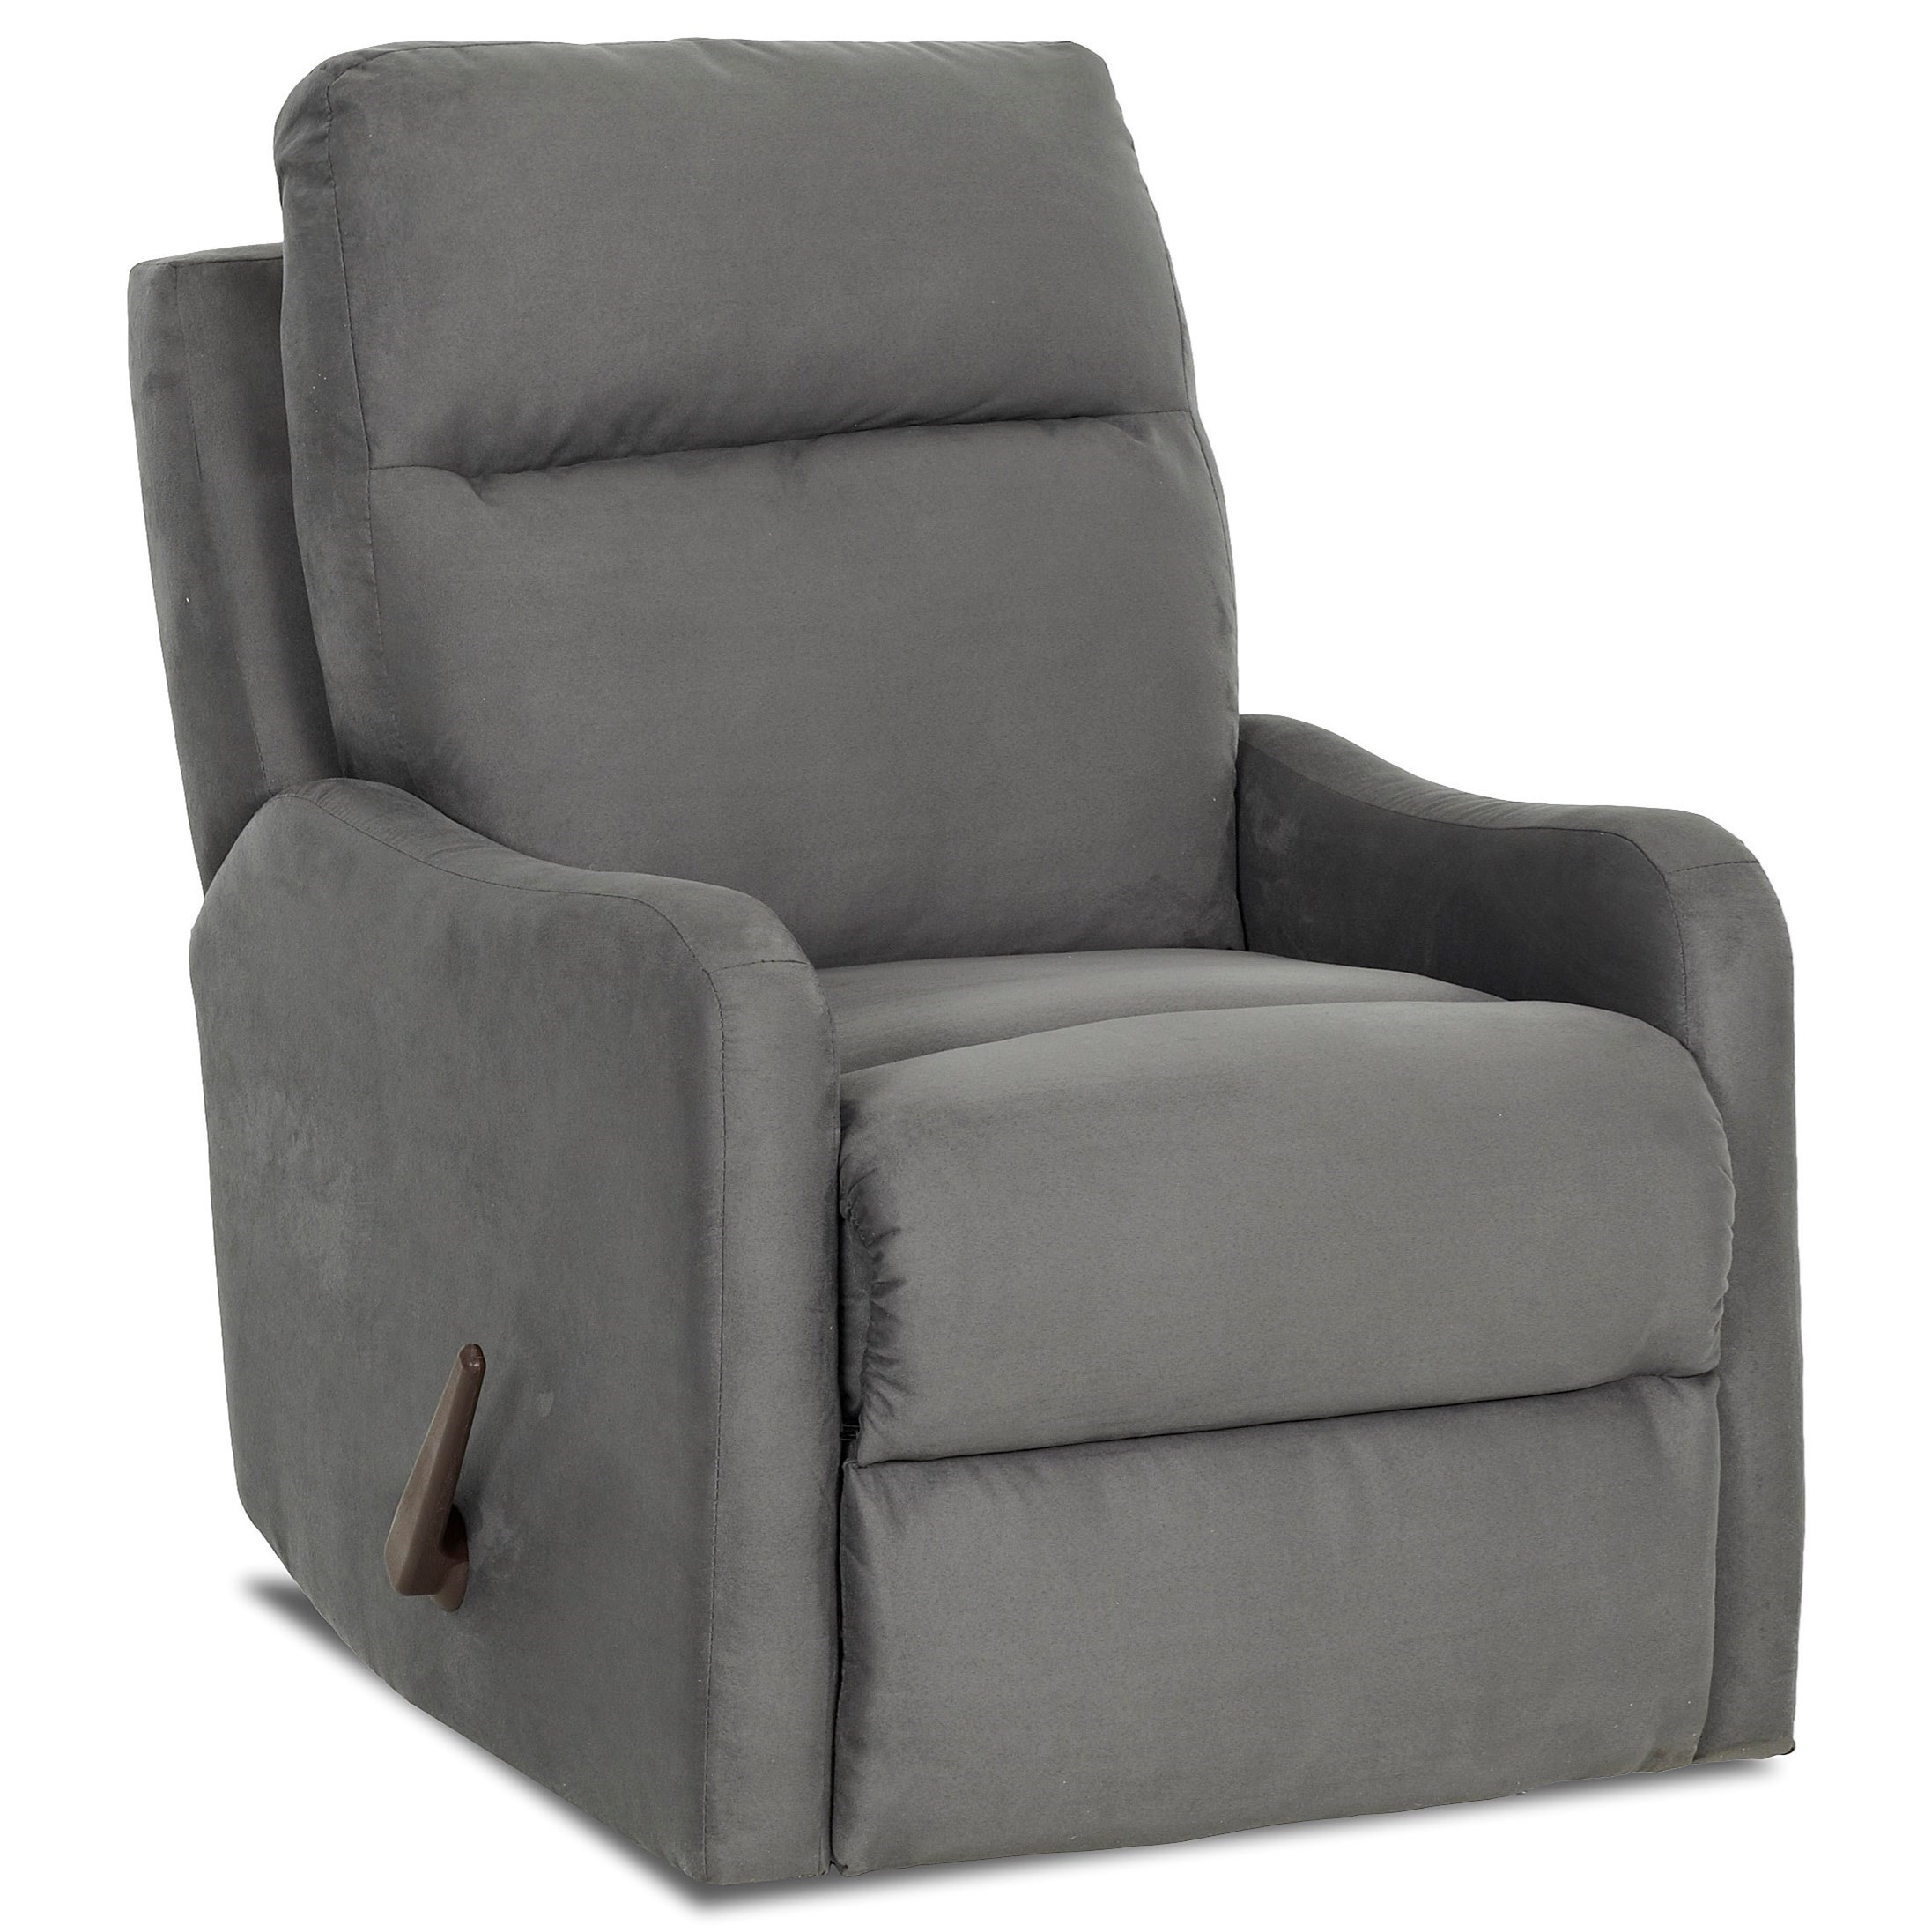 Klaussner Tacoma Casual Power Reclining Chair Suburban